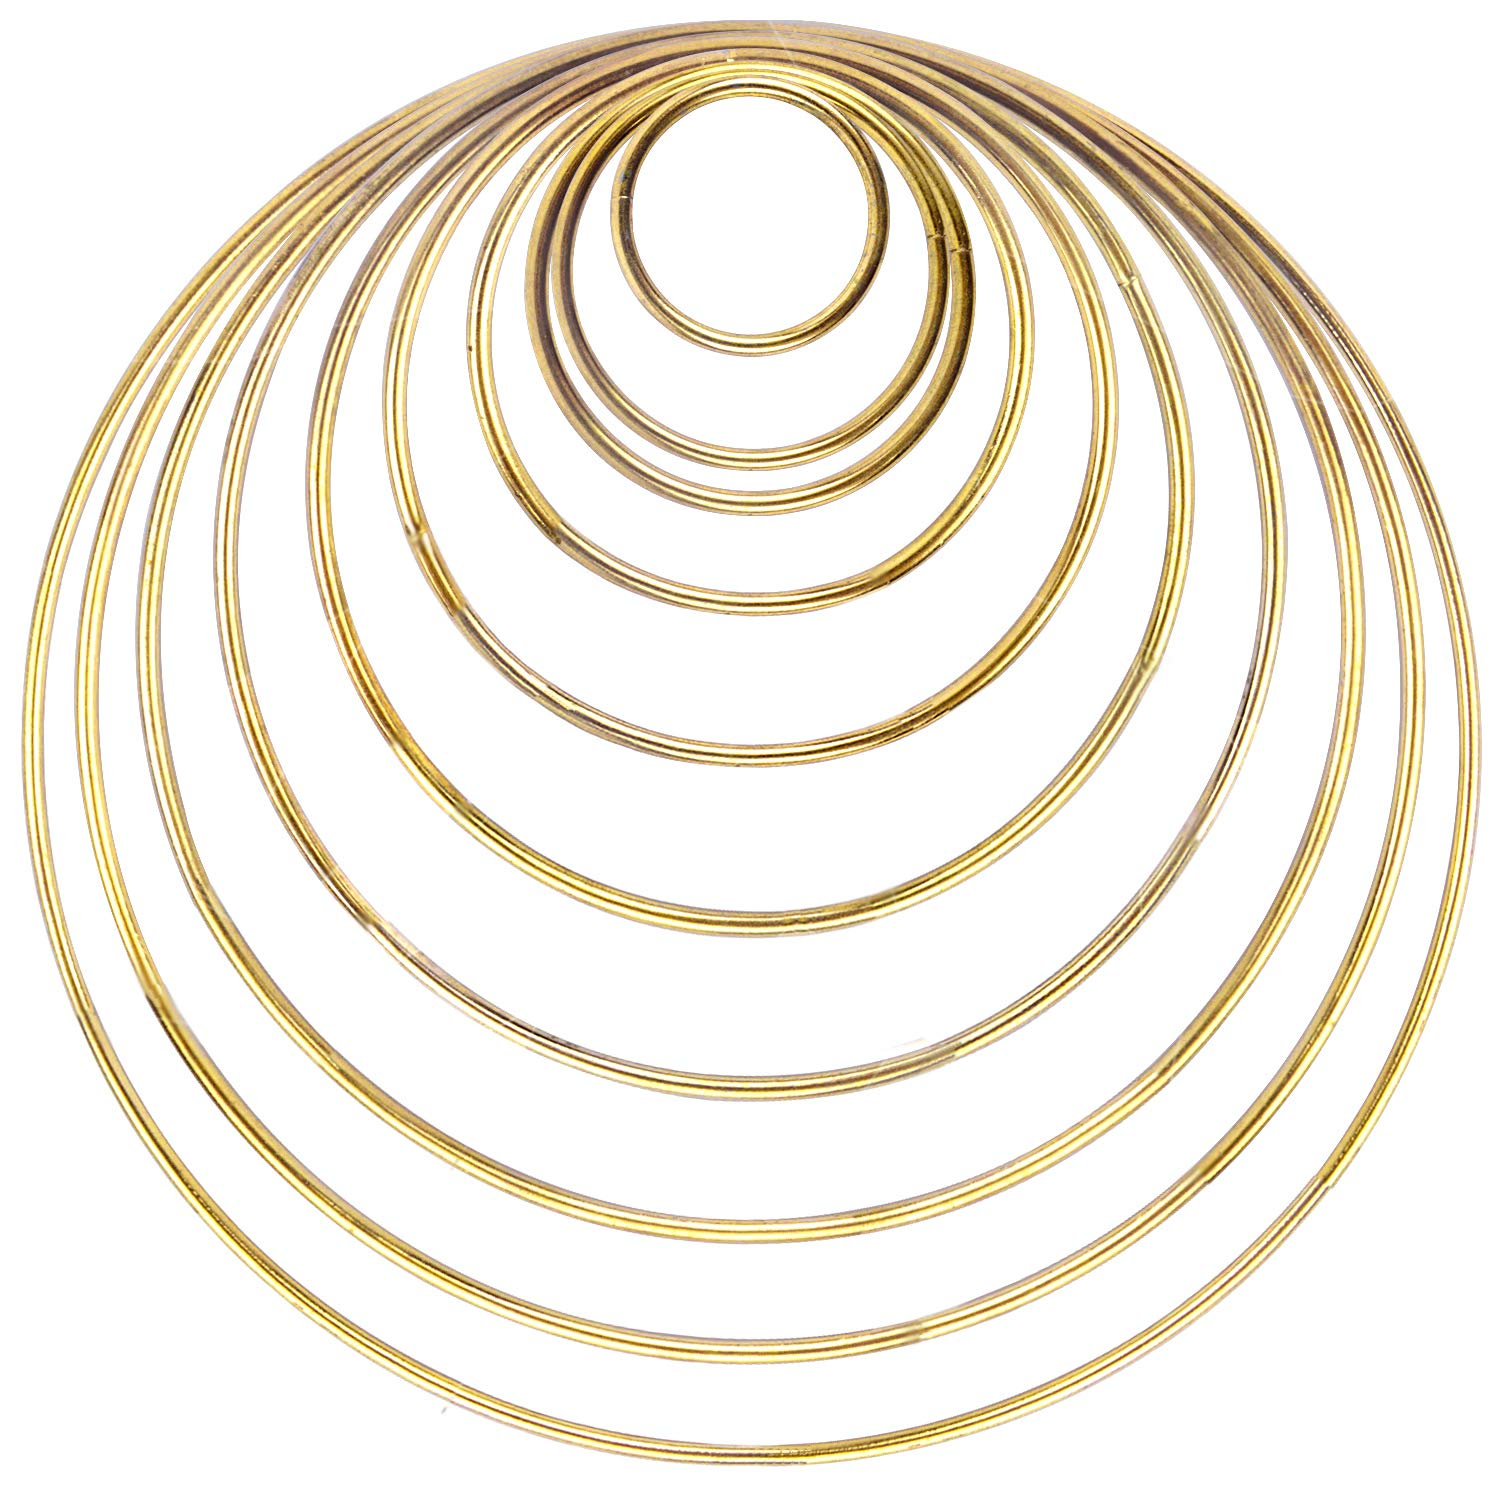 BronaGrand 10 Pieces Metal Rings Craft Metal Hoops Macrame Rings for Dream Catcher and Crafts, 10 Sizes(Gold)